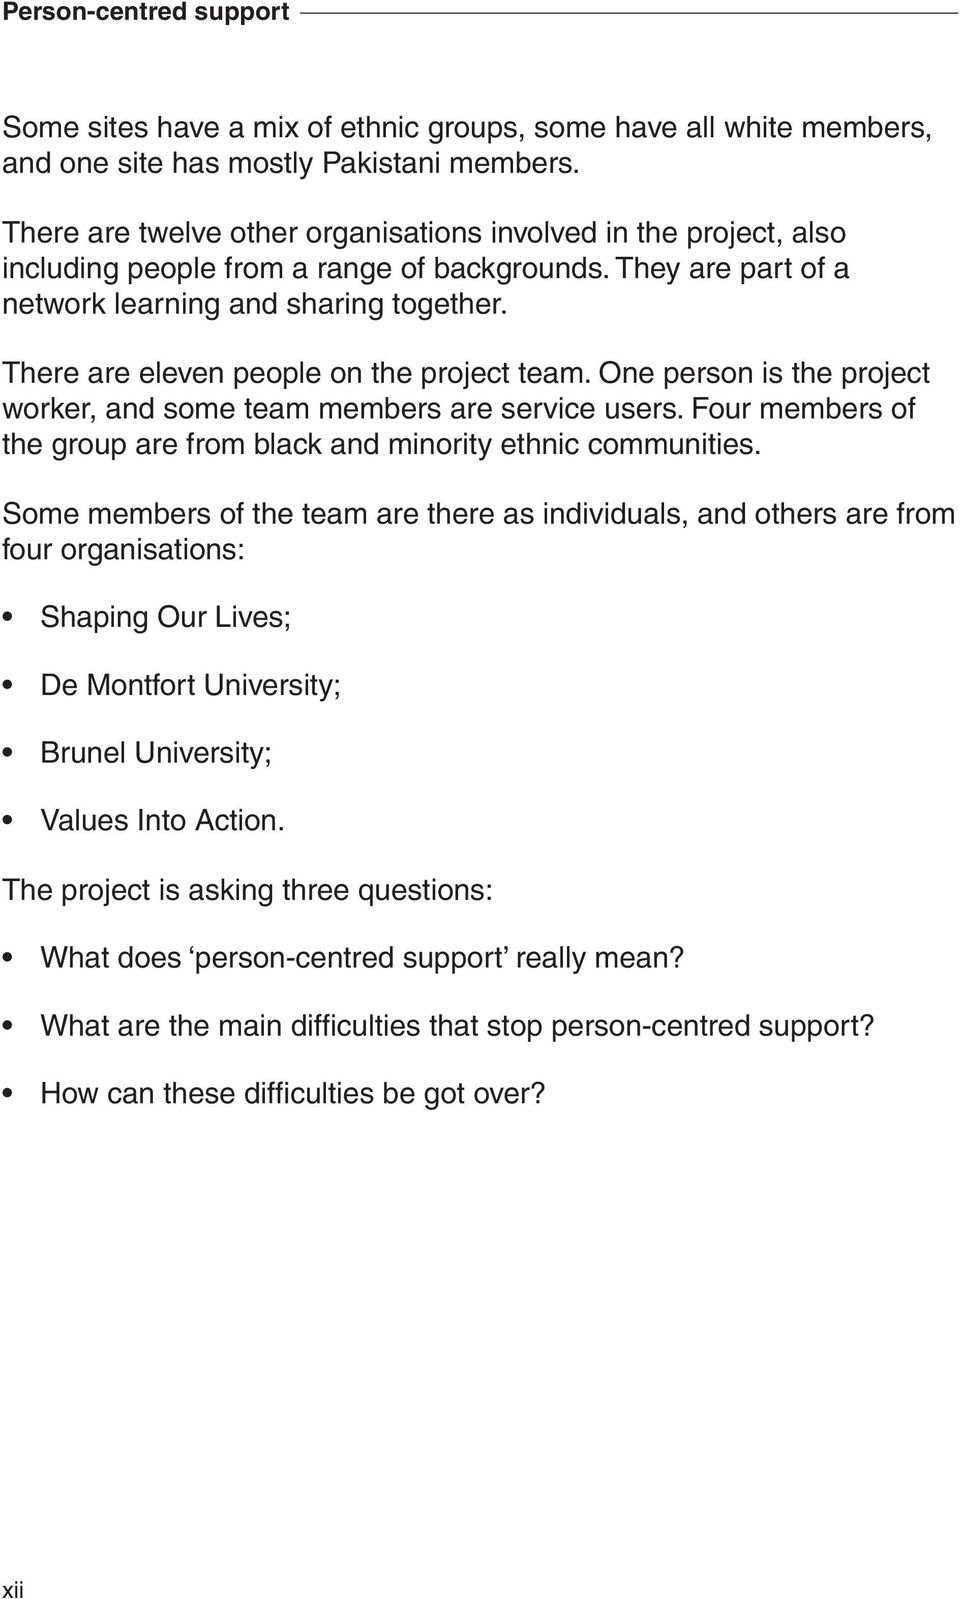 There are eleven people on the project team. One person is the project worker, and some team members are service users. Four members of the group are from black and minority ethnic communities.